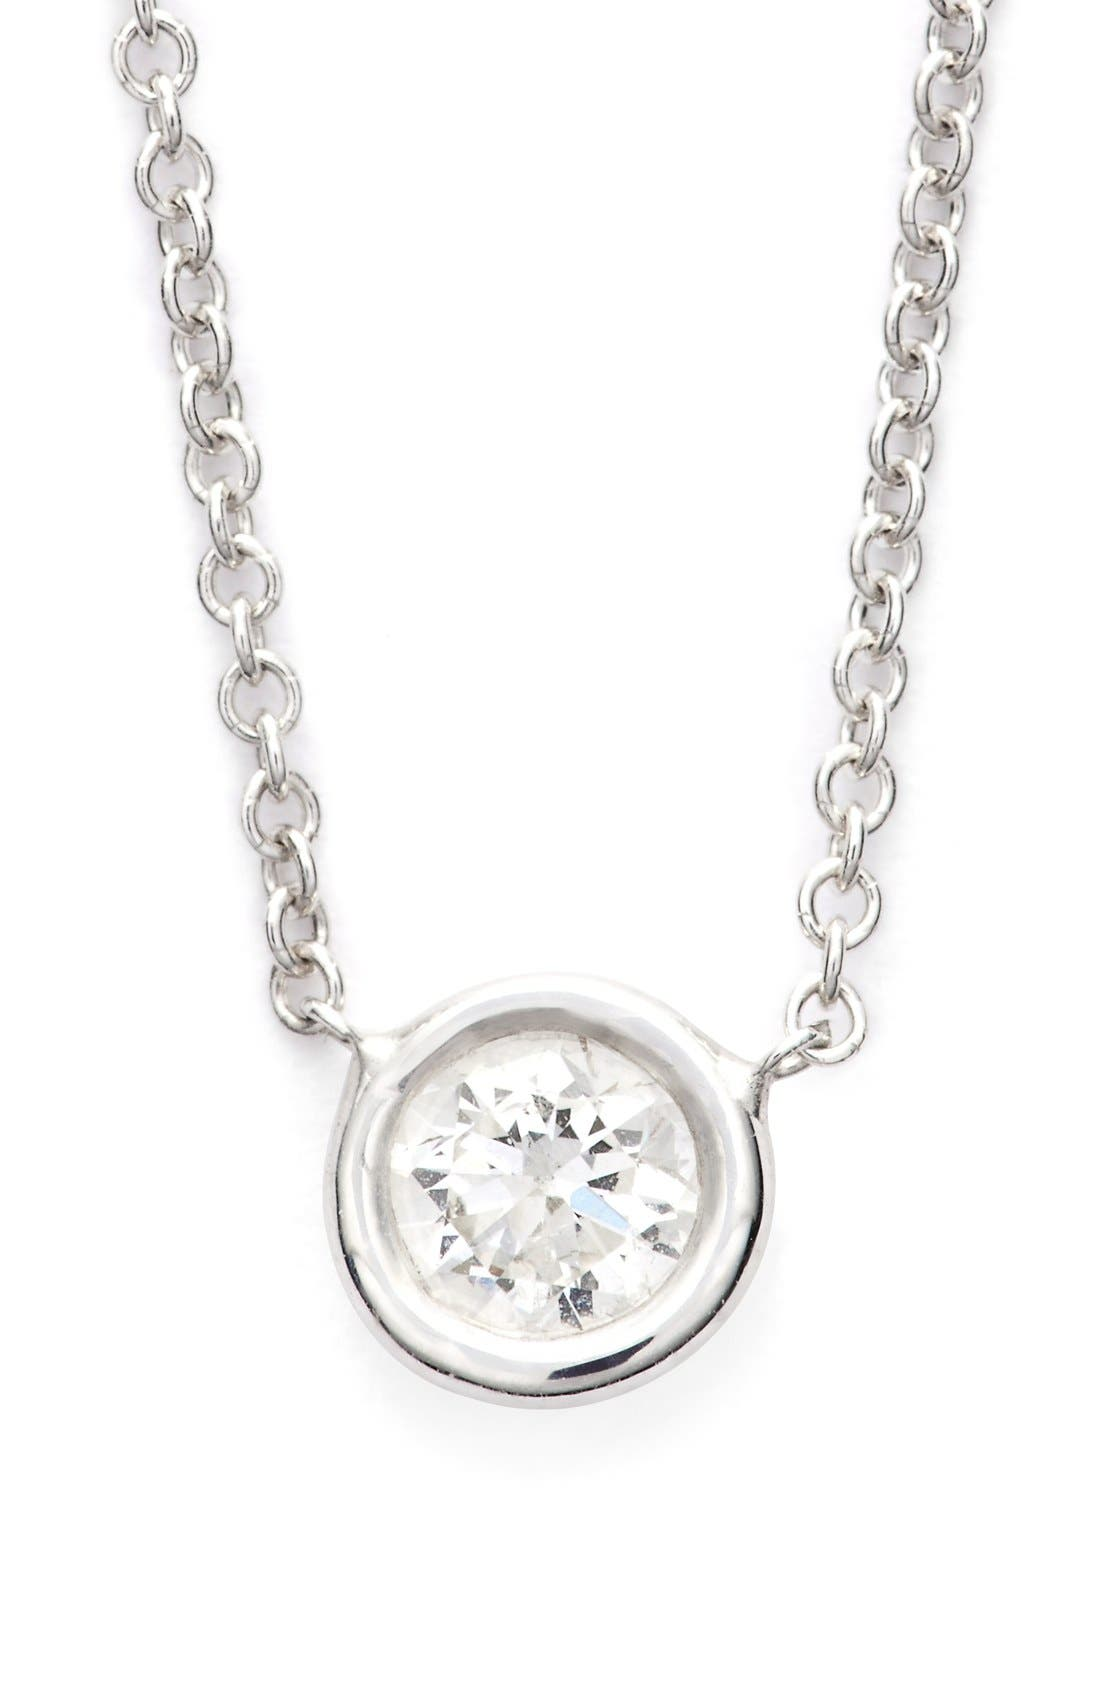 Main Image - Bony Levy Medium Diamond Solitaire Pendant Necklace (Limited Edition) (Nordstrom Exclusive)